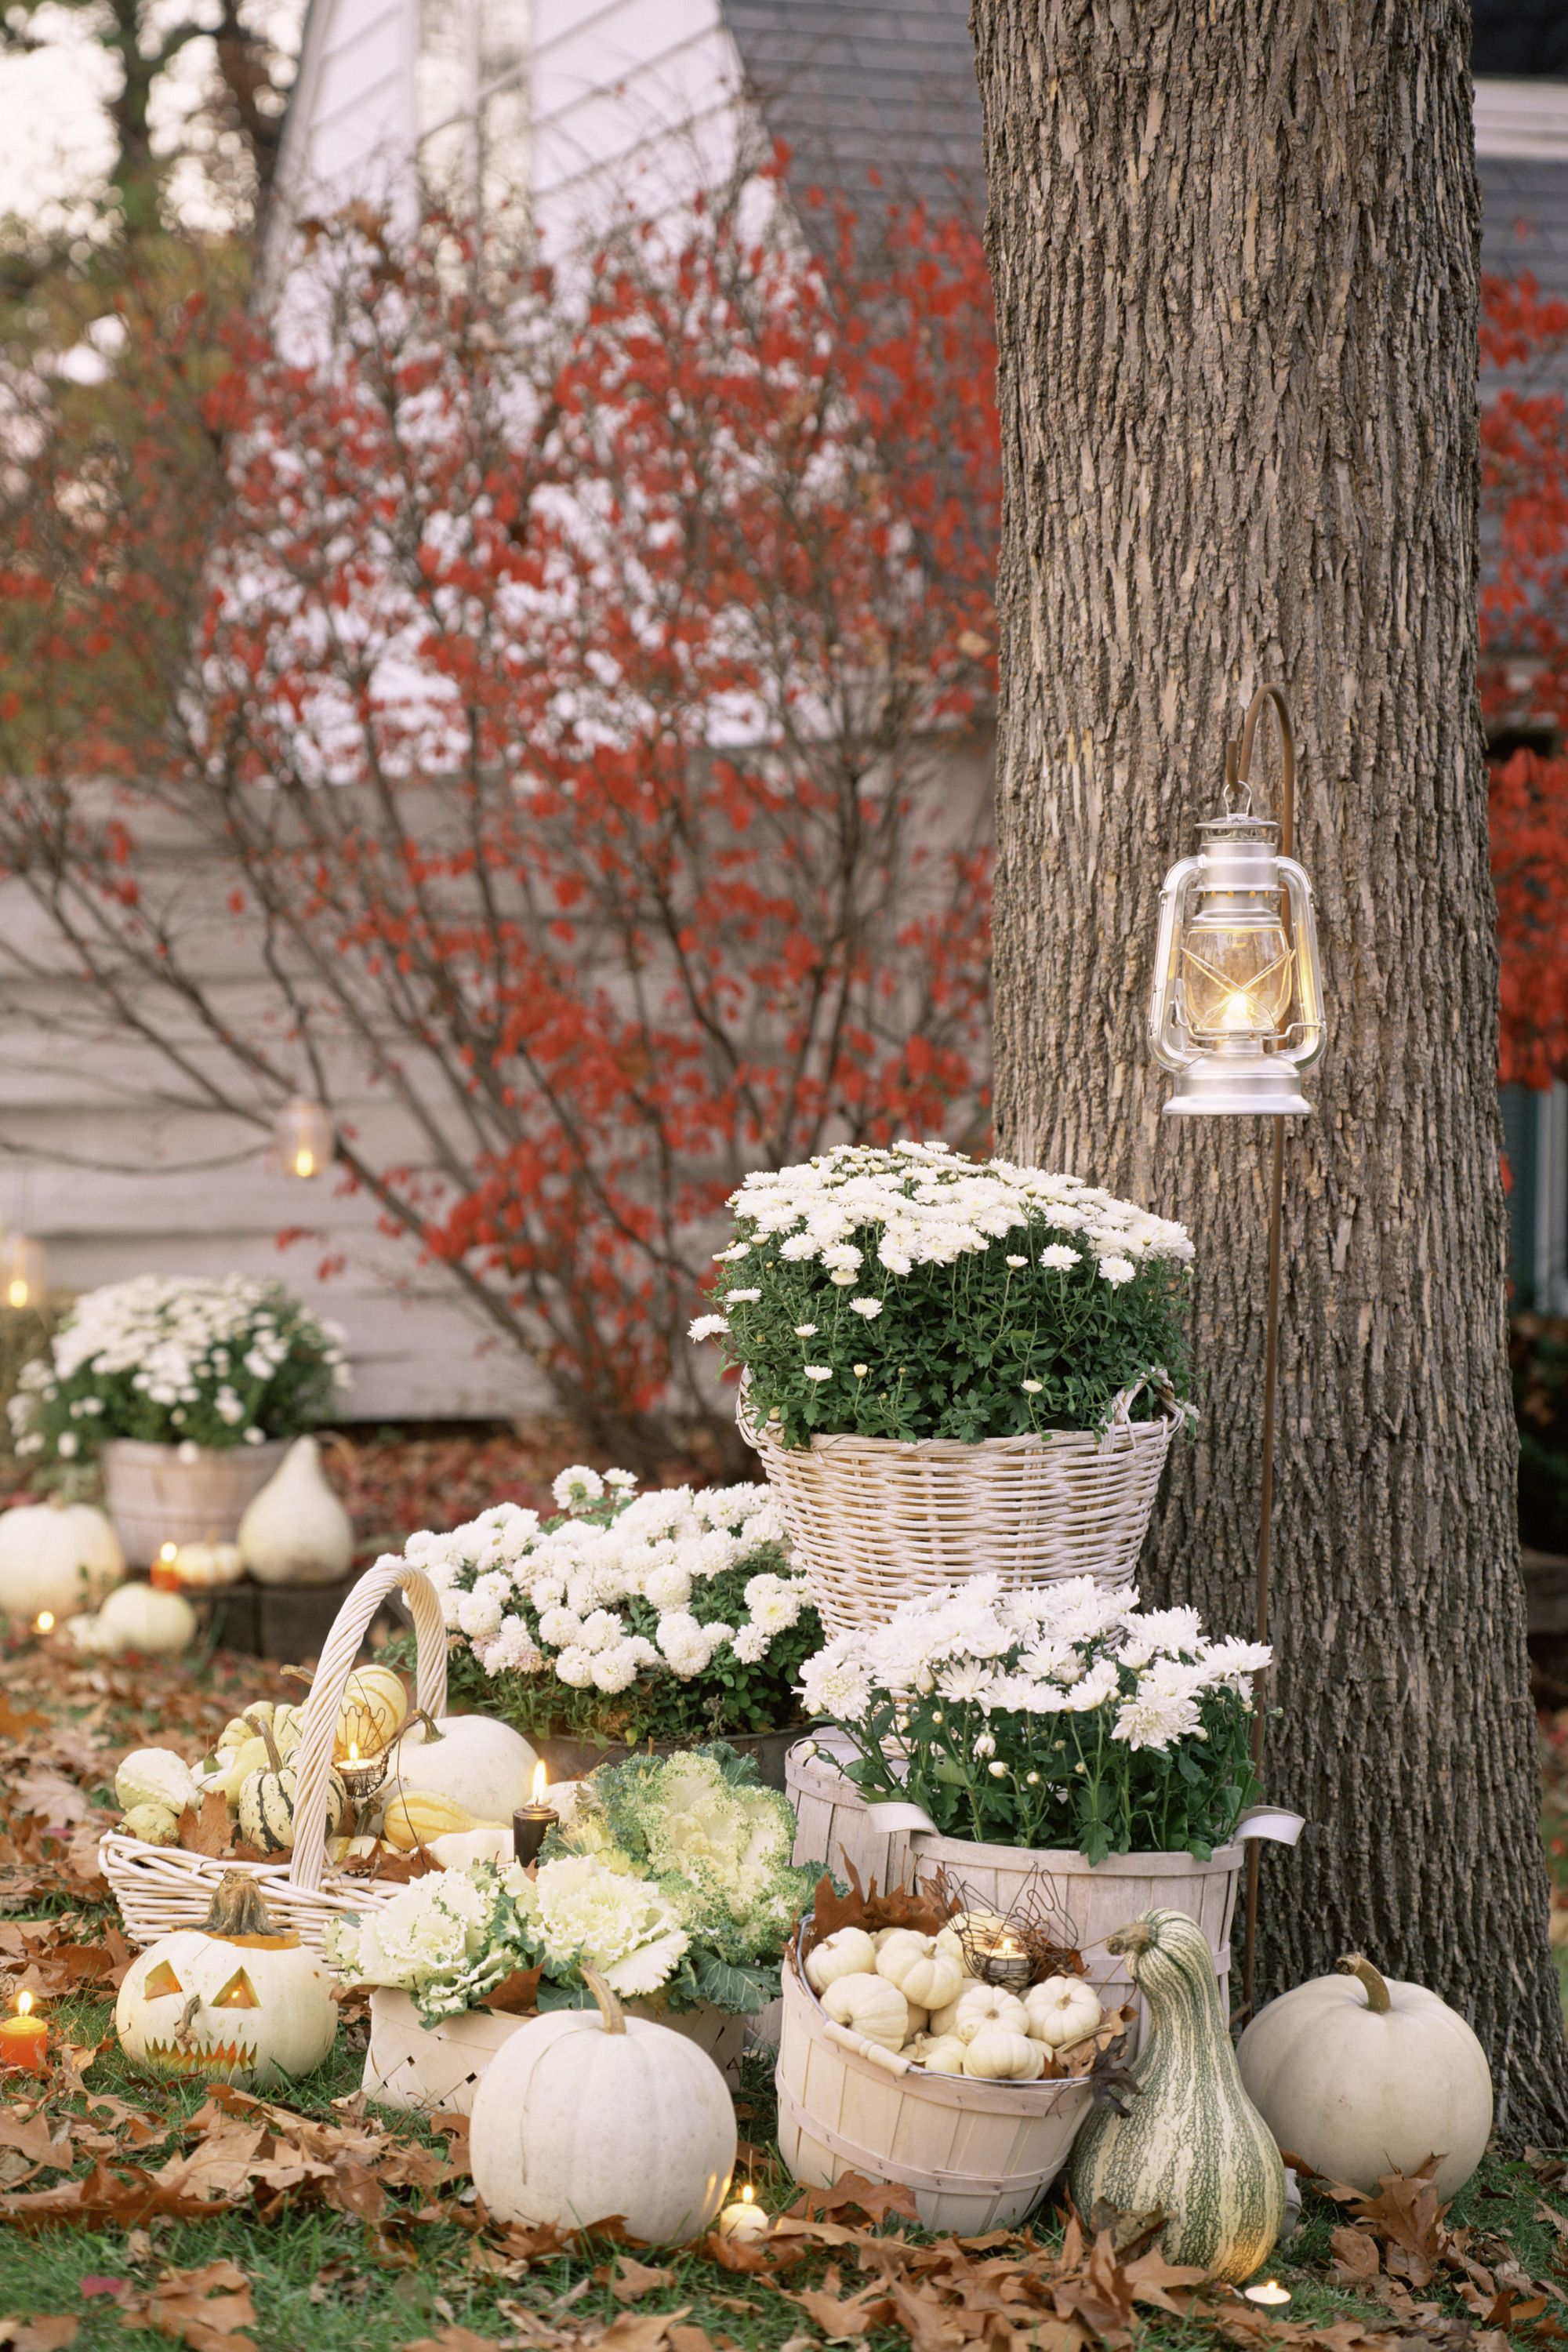 <p>Just because it is autumn doesn't mean your house needs to be orange. Decorate with white pumpkins, gourds, and mums rather than the traditional pumpkin route.</p>